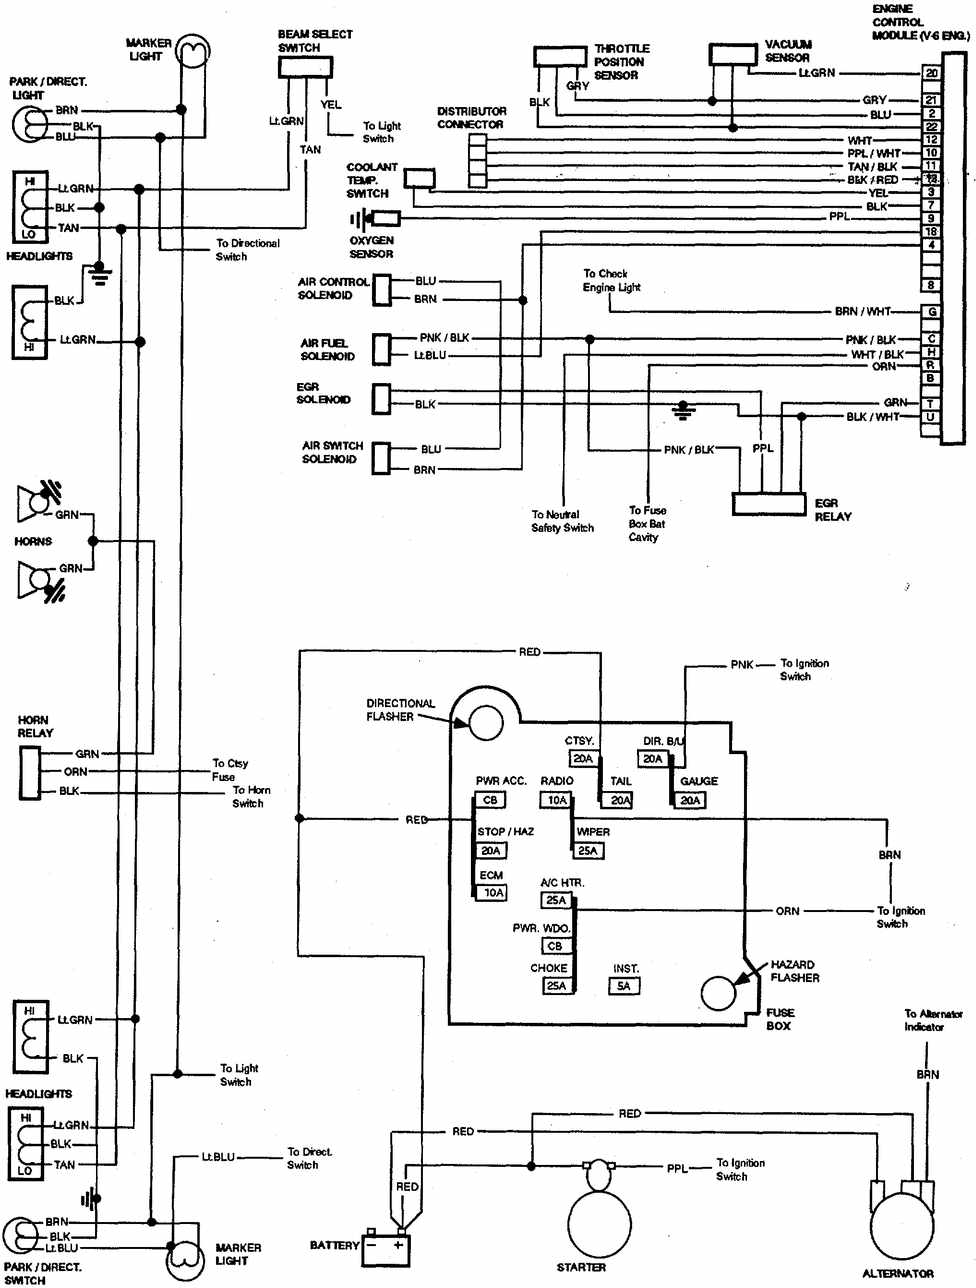 Wiring Diagram For Classic 76 Auto Electrical 1969 Chevrolet C10 V8 Trucks 1981